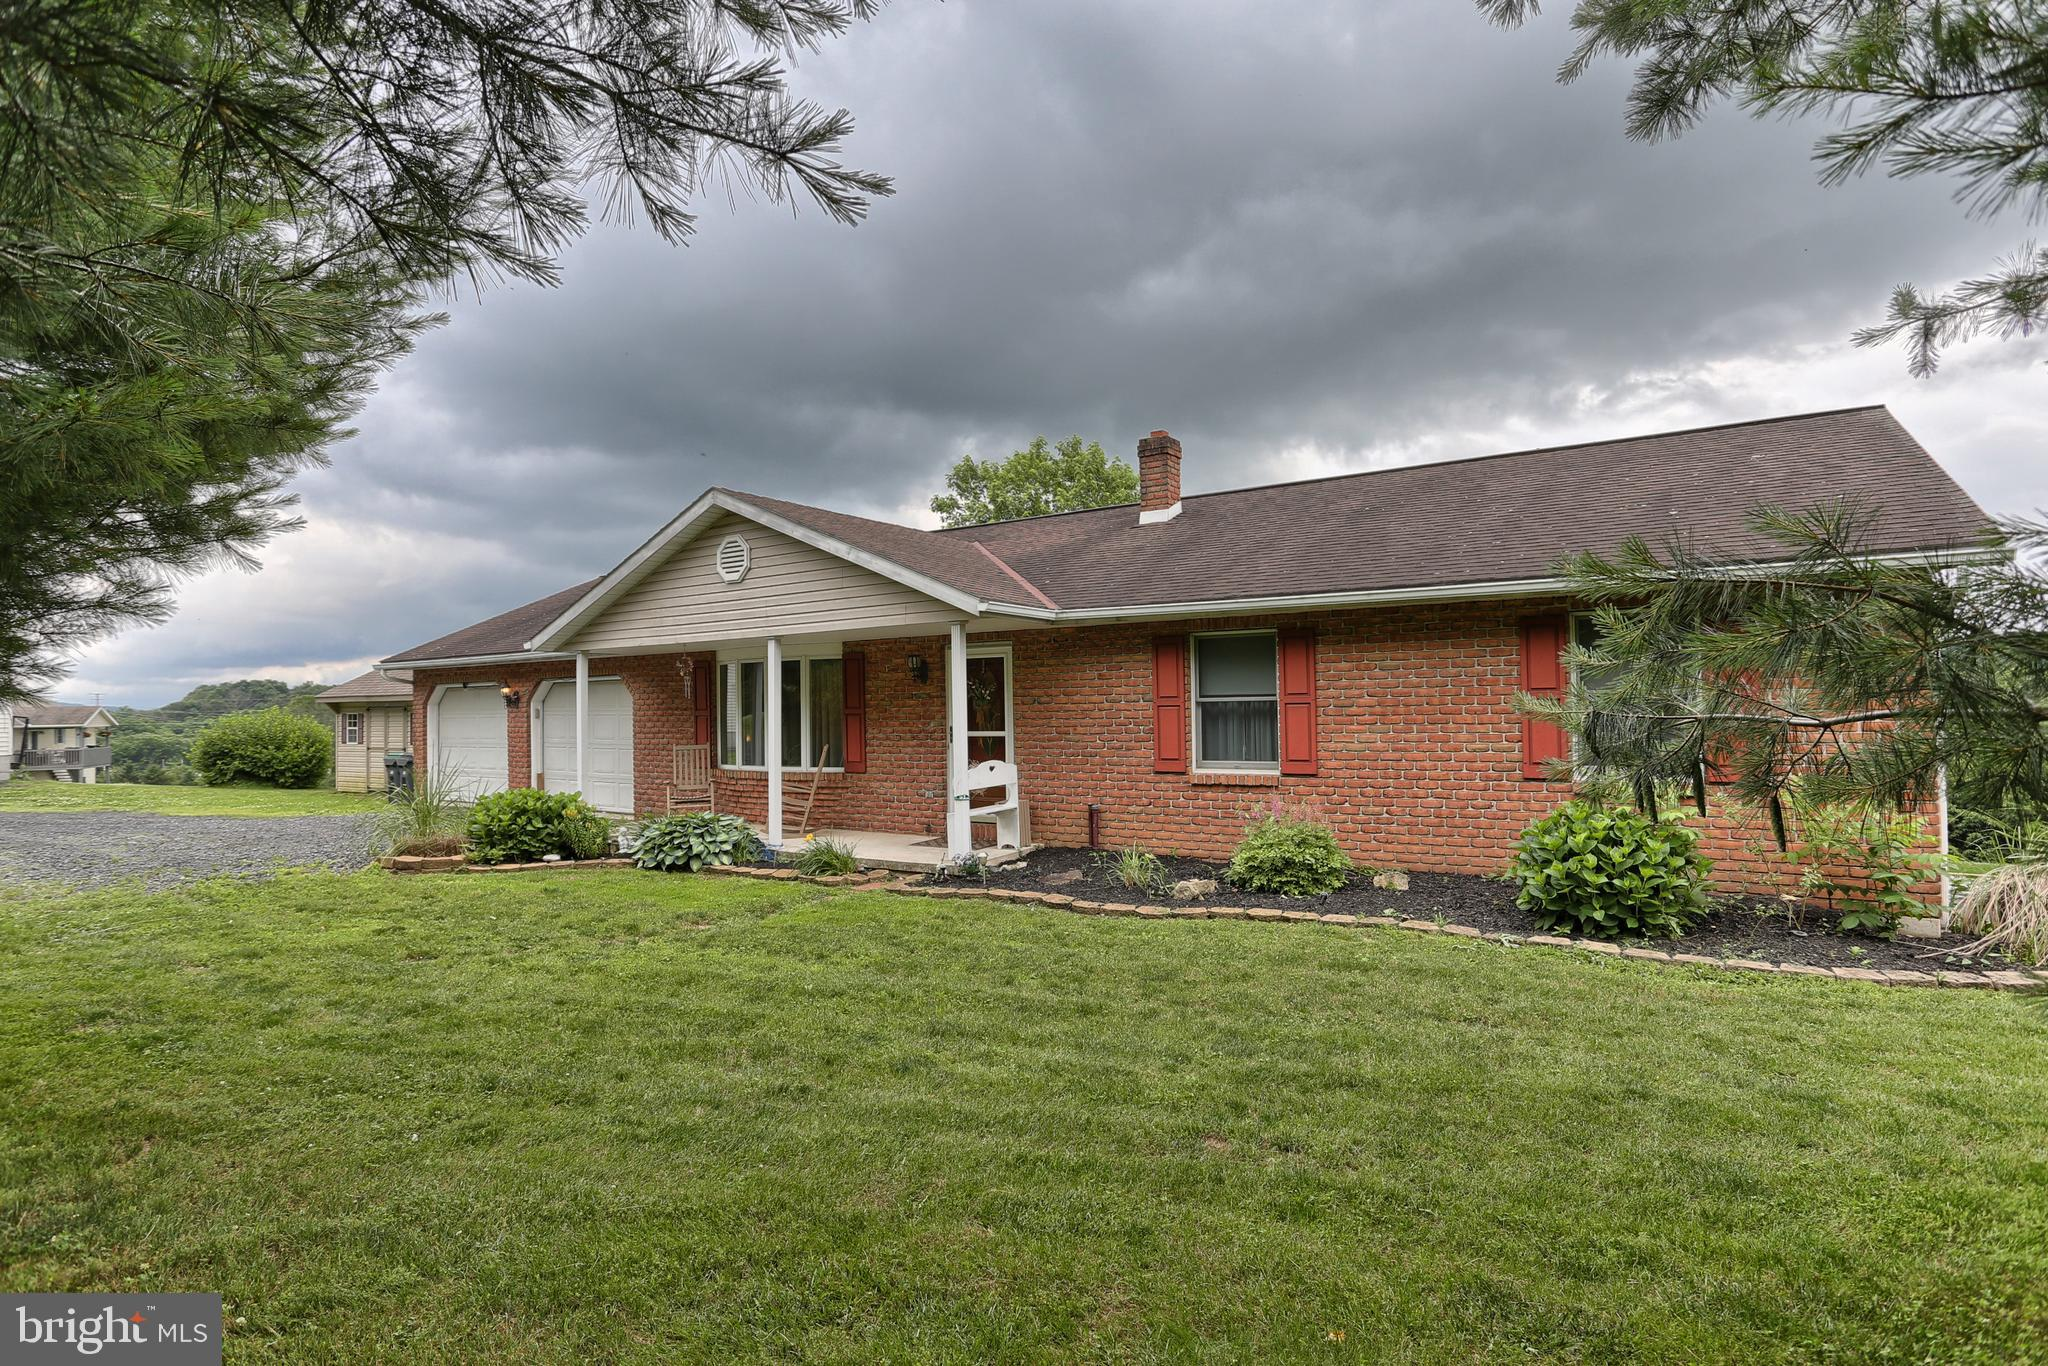 22 WOOD LAWN DRIVE, SCHUYLKILL HAVEN, PA 17972